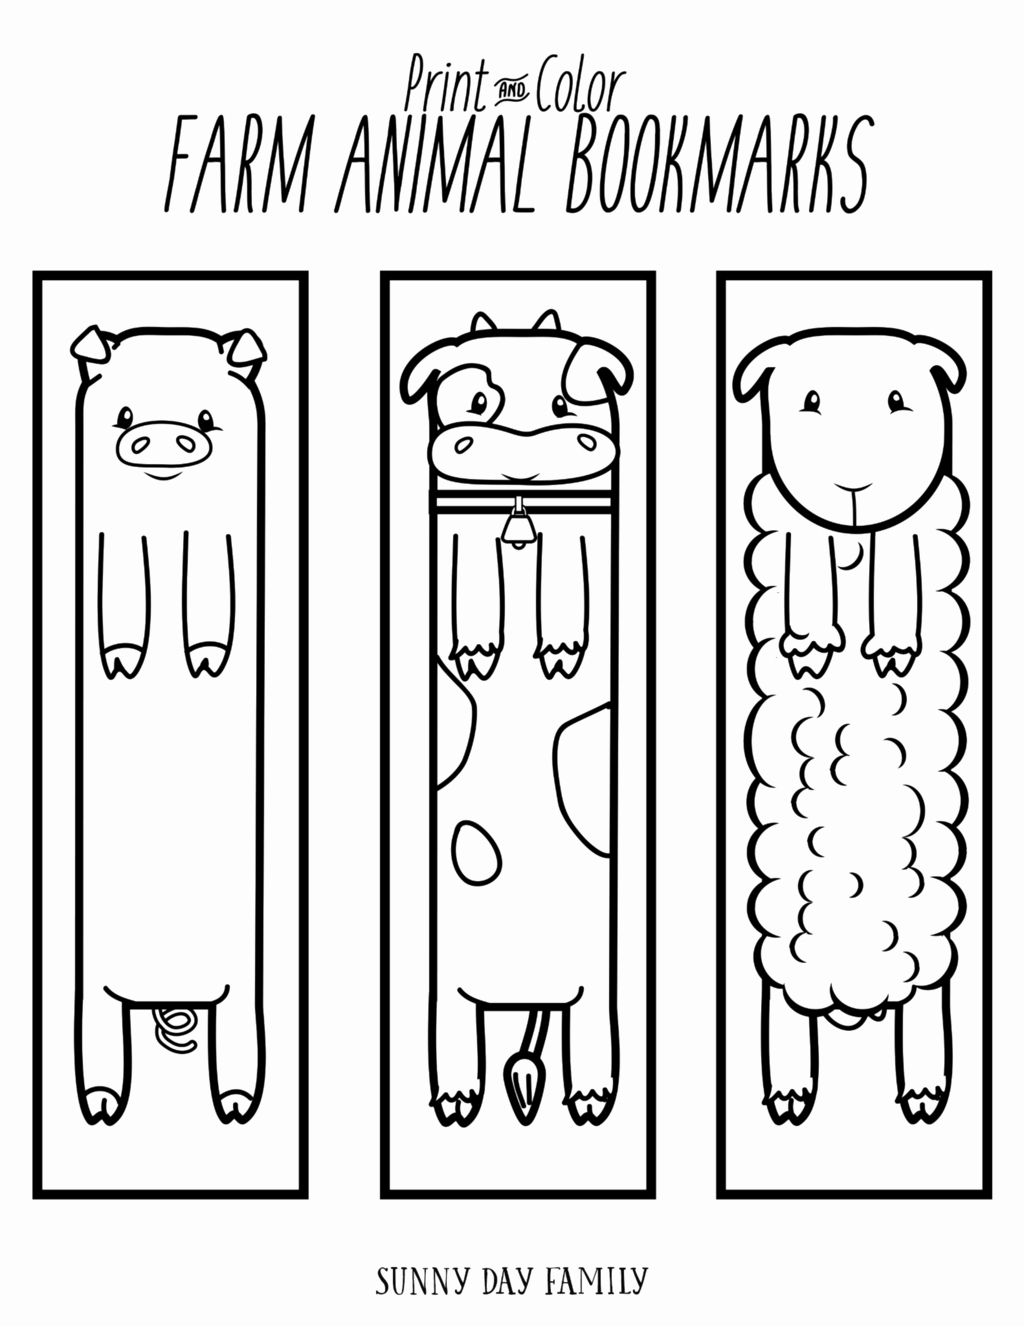 Bookmark Template for Pages Unique Free Printable Farm Animal Bookmarks for Kids to Color